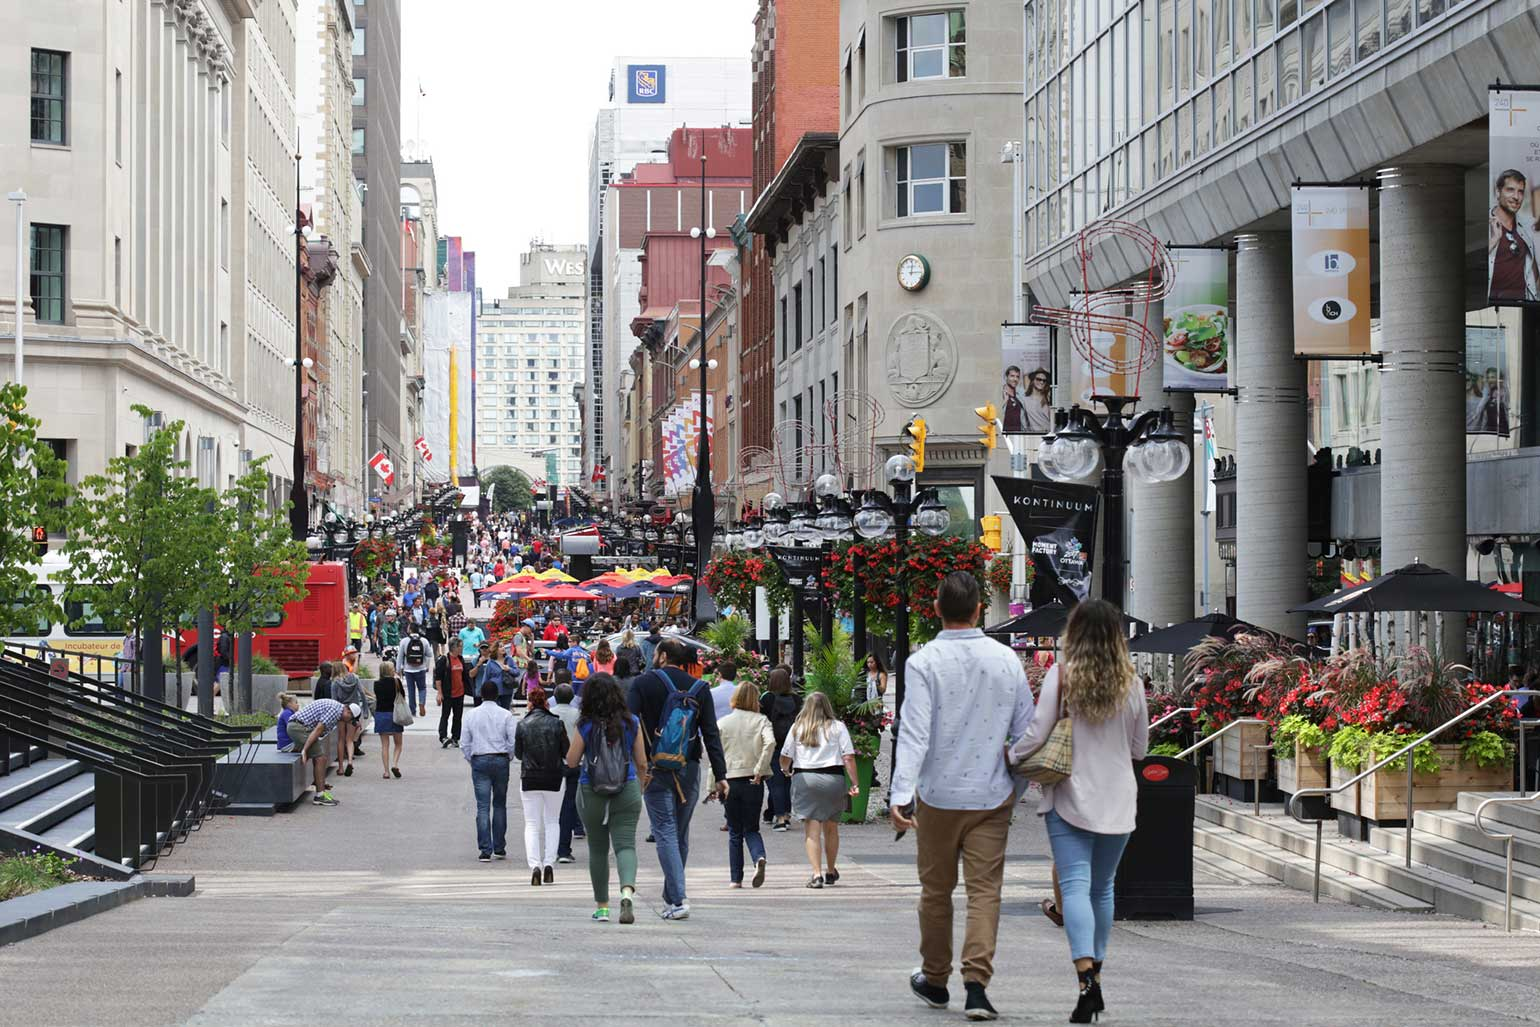 Sparks street mall in Ottawa is filled with visitors admiring the shops and establishments.